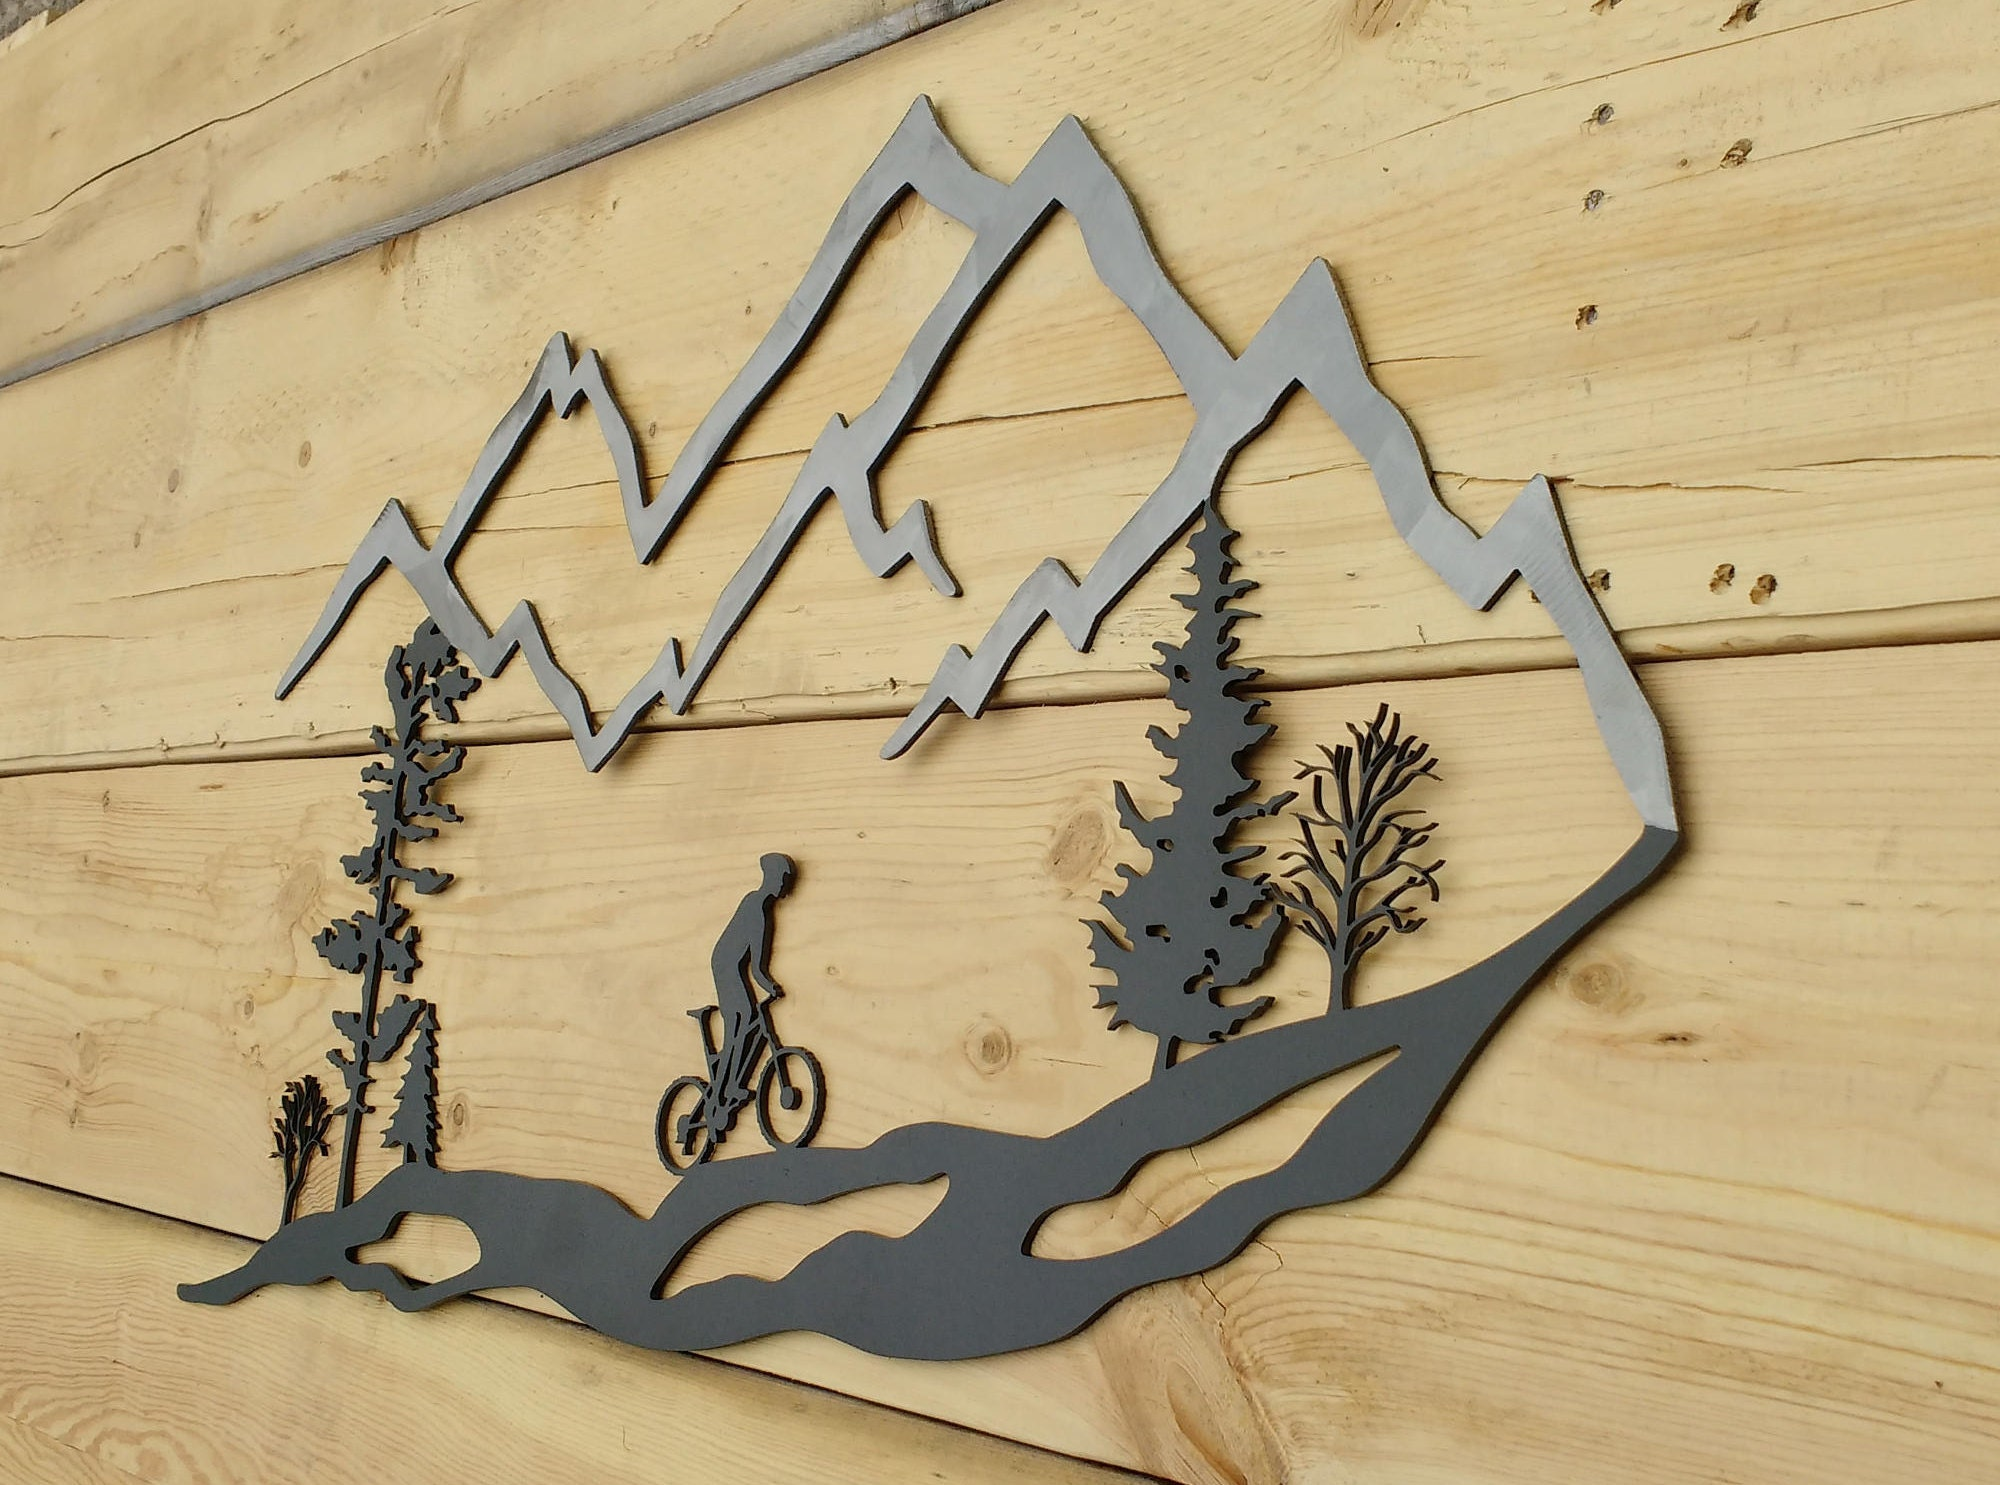 Metal Wall Art Mountain Bike Trees Mountain Bike MTB | Etsy